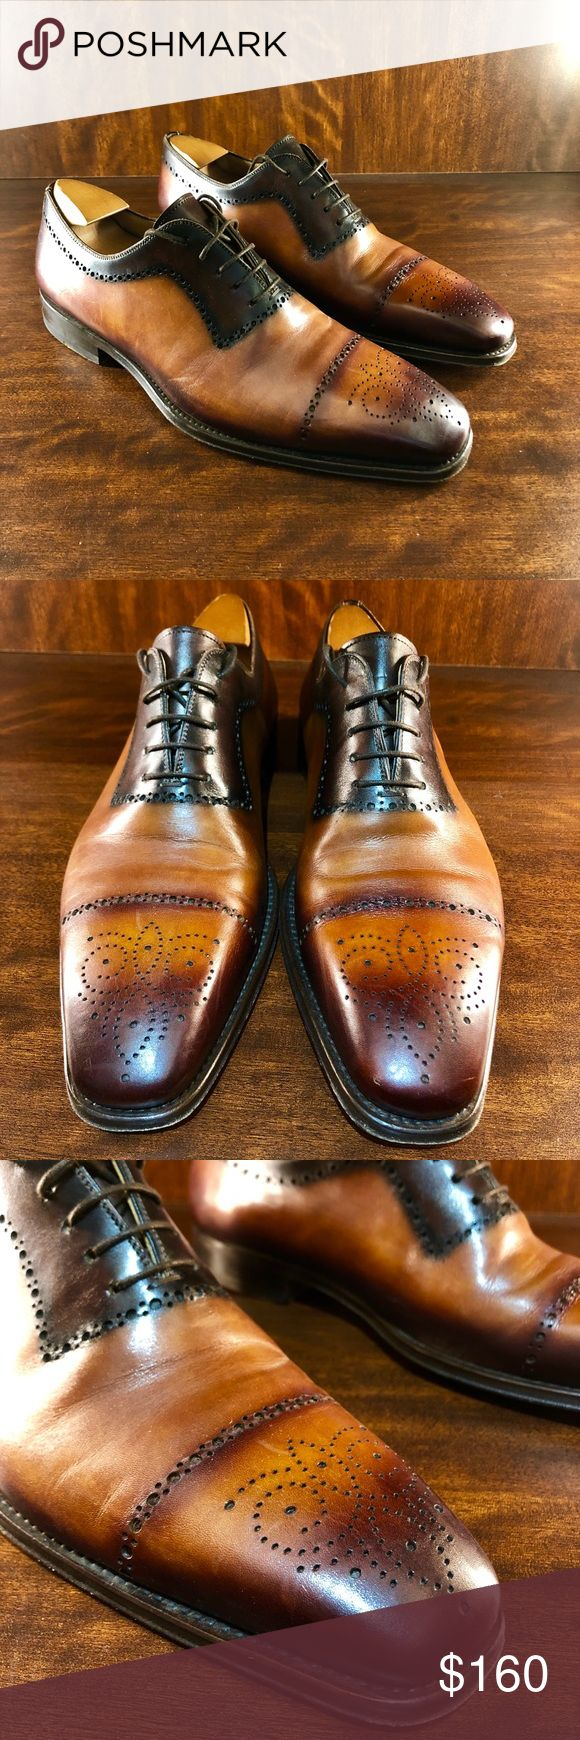 LIKE NEW! Magnanni Leather Dress Shoes! Sz 9 Immaculate pair of Magnanni dress s...